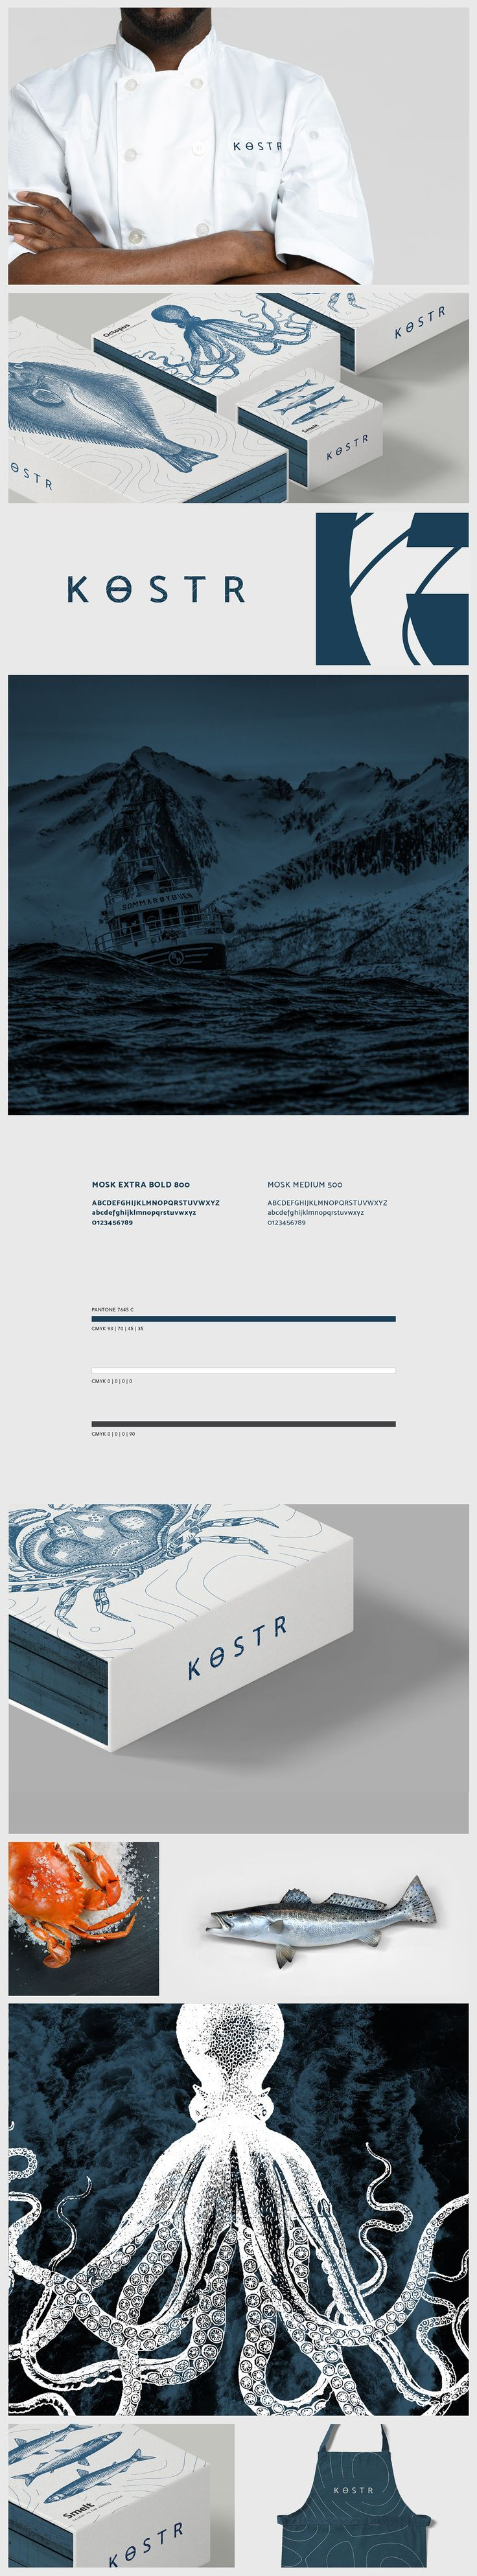 Kostr is a Nordic brand of fresh seafood. The meaning of Kostr in Old Norse is quality and thus prioritizes quality over all else. The topography of the ocean is a focal point of the branding. Each package states the waters the fish were caught in, as wel…